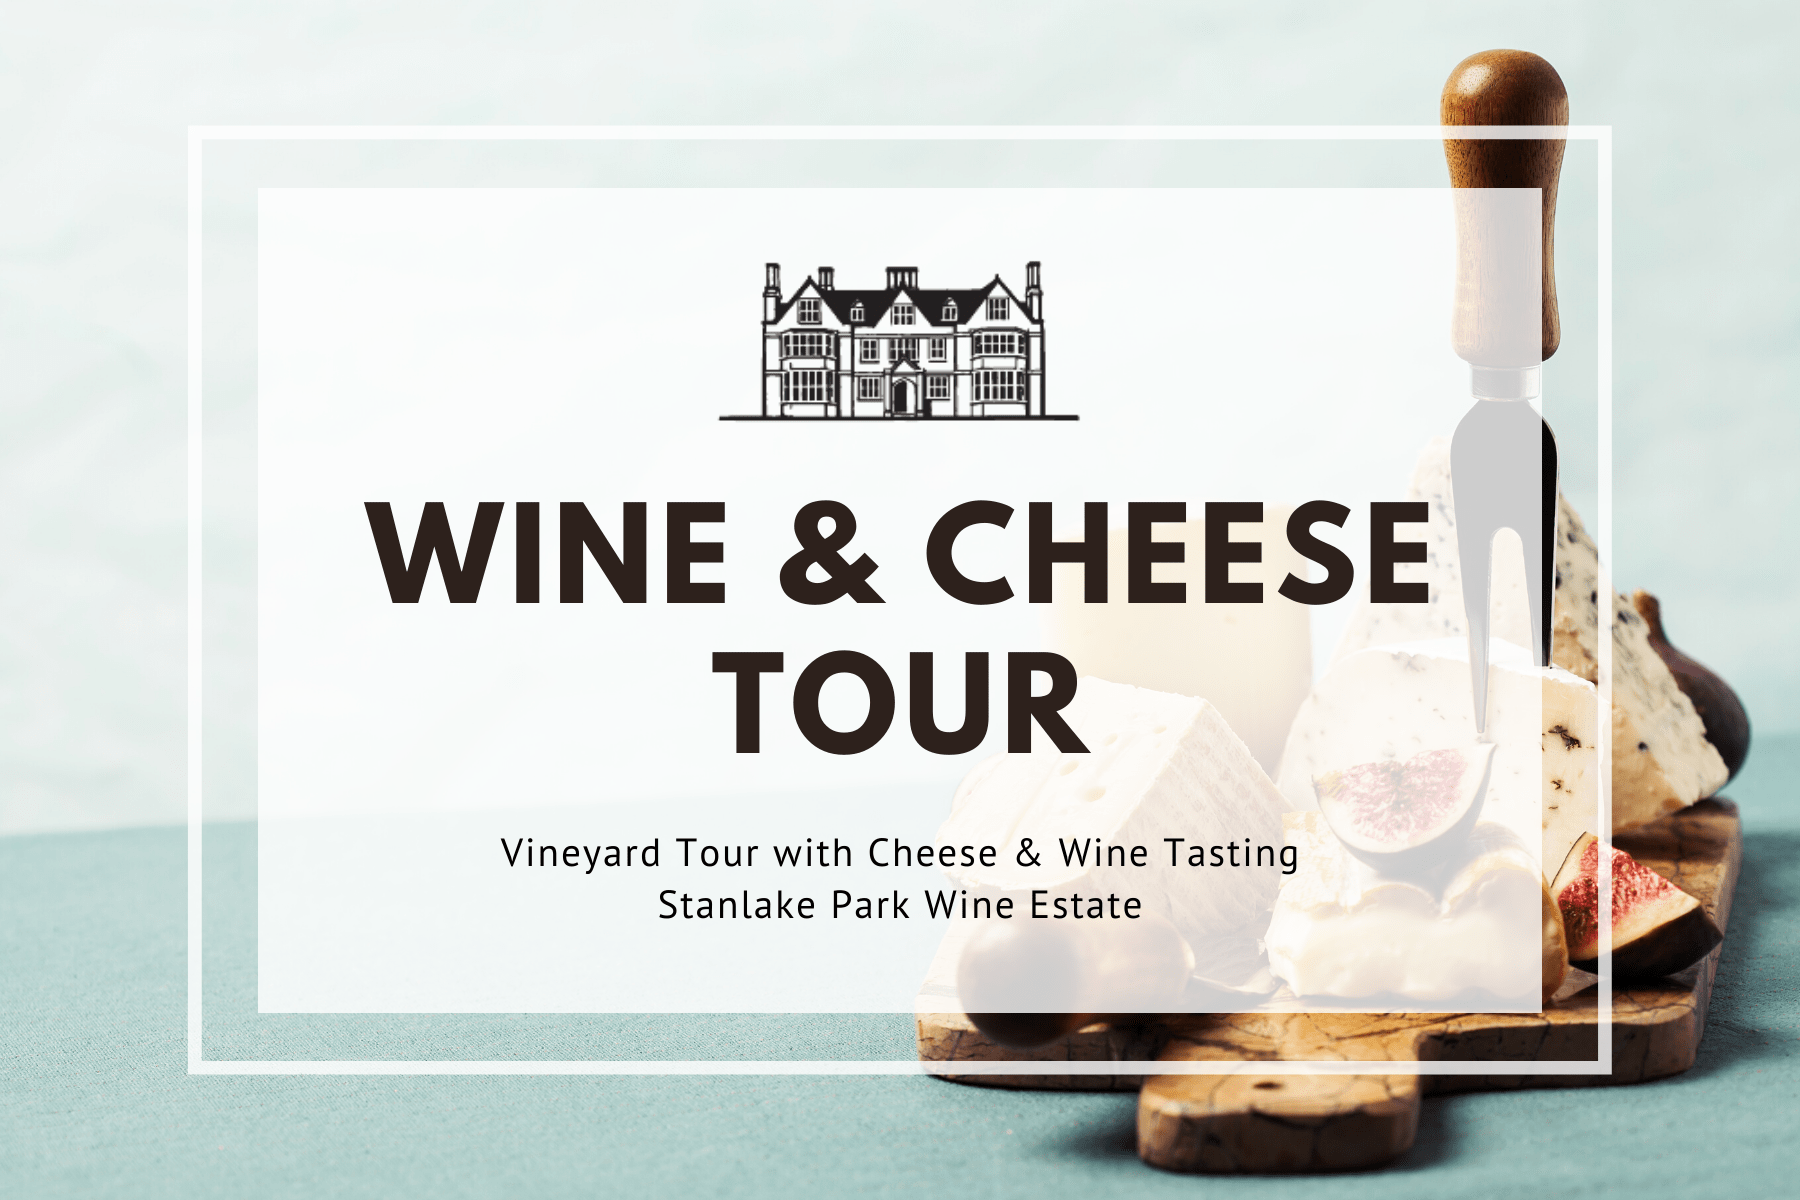 Sunday 15th August 2021 at 11 am - Wine & Cheese Tour